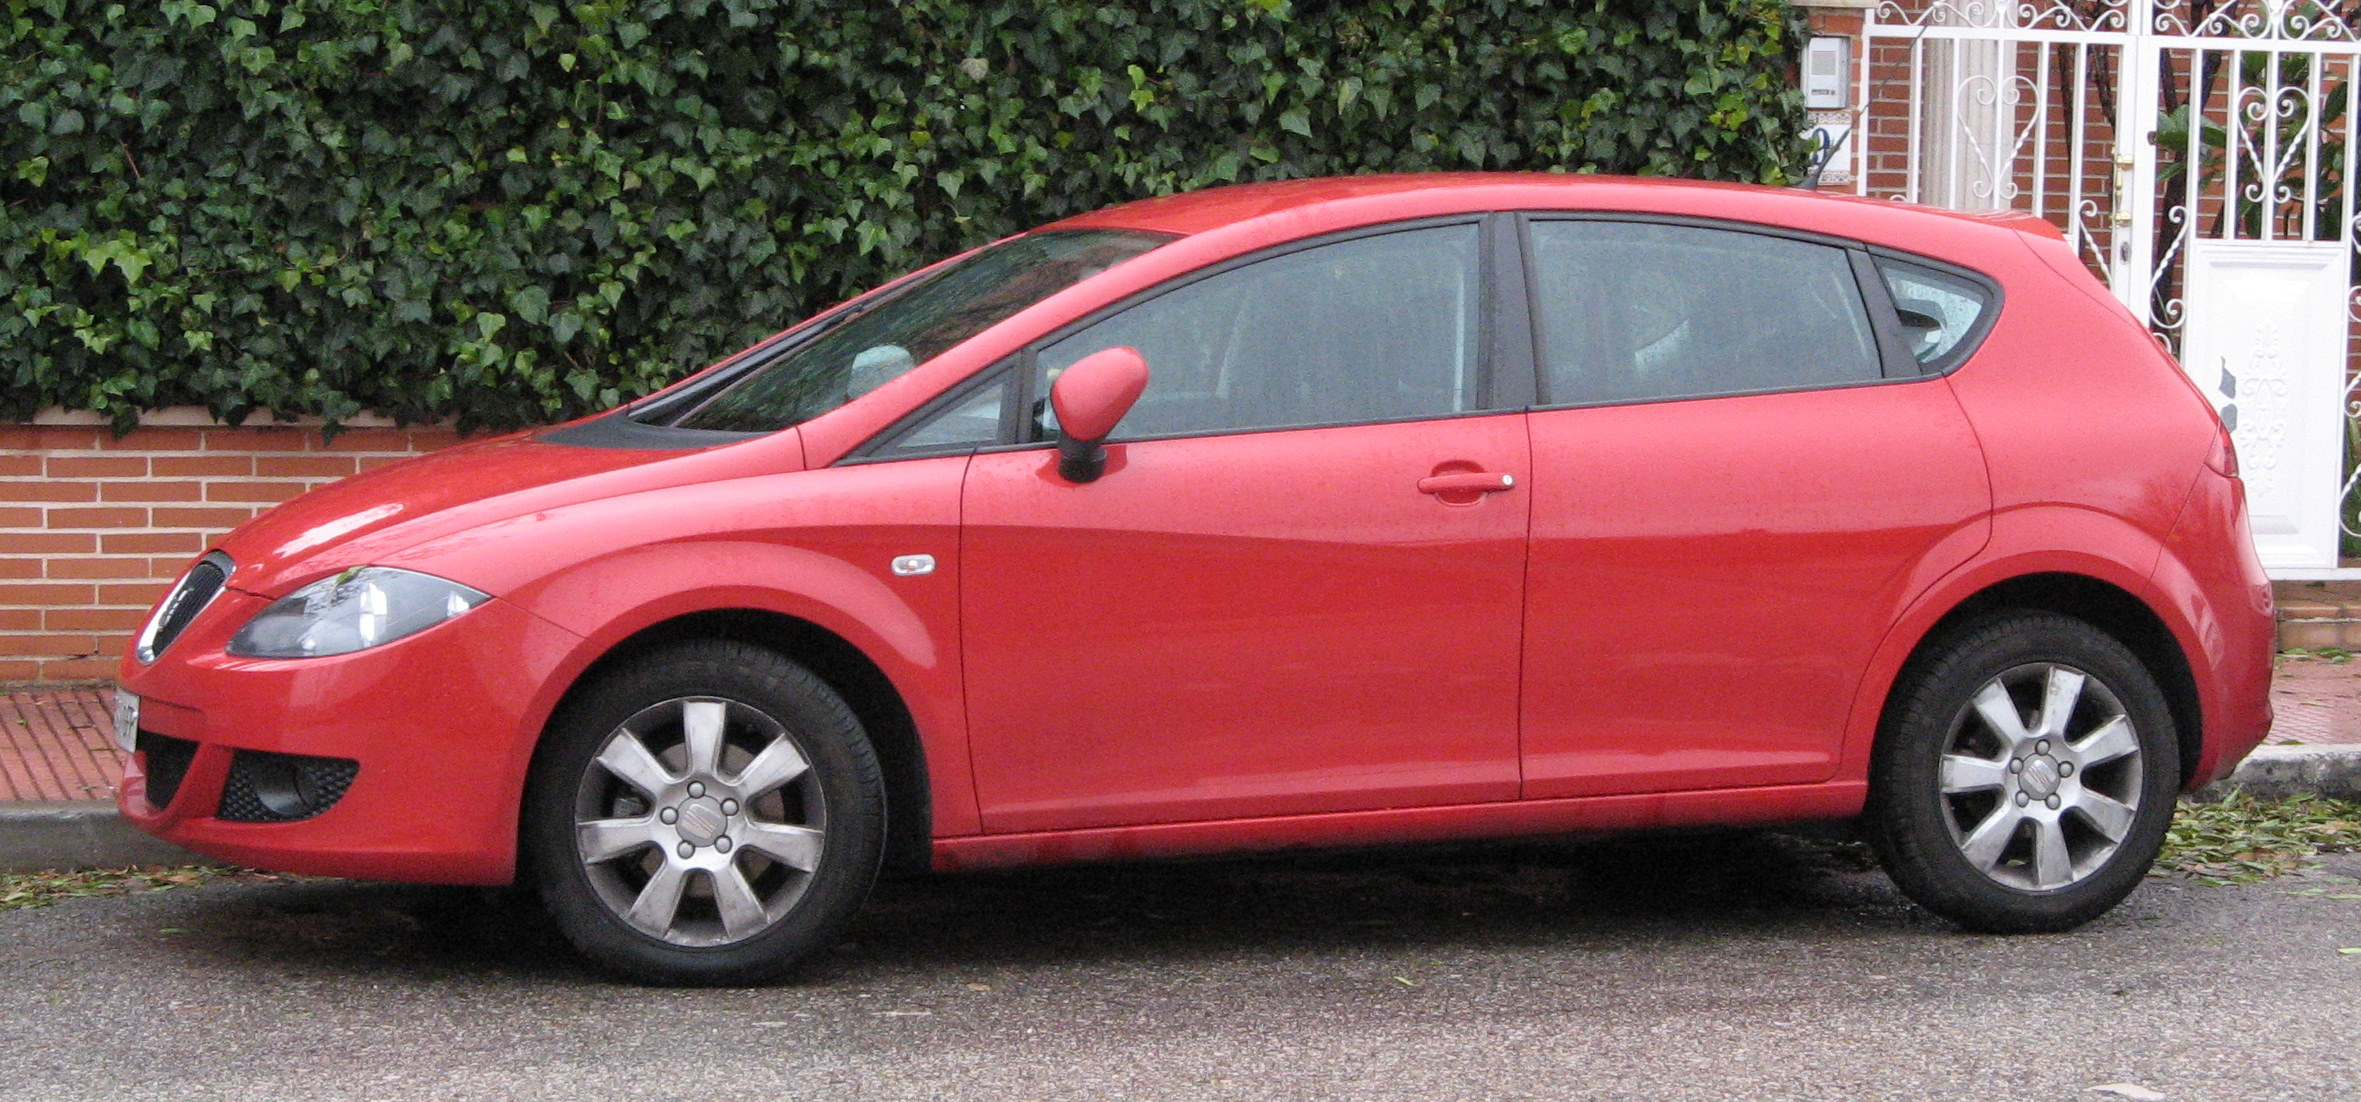 2011 seat leon ii 1p pictures information and specs. Black Bedroom Furniture Sets. Home Design Ideas